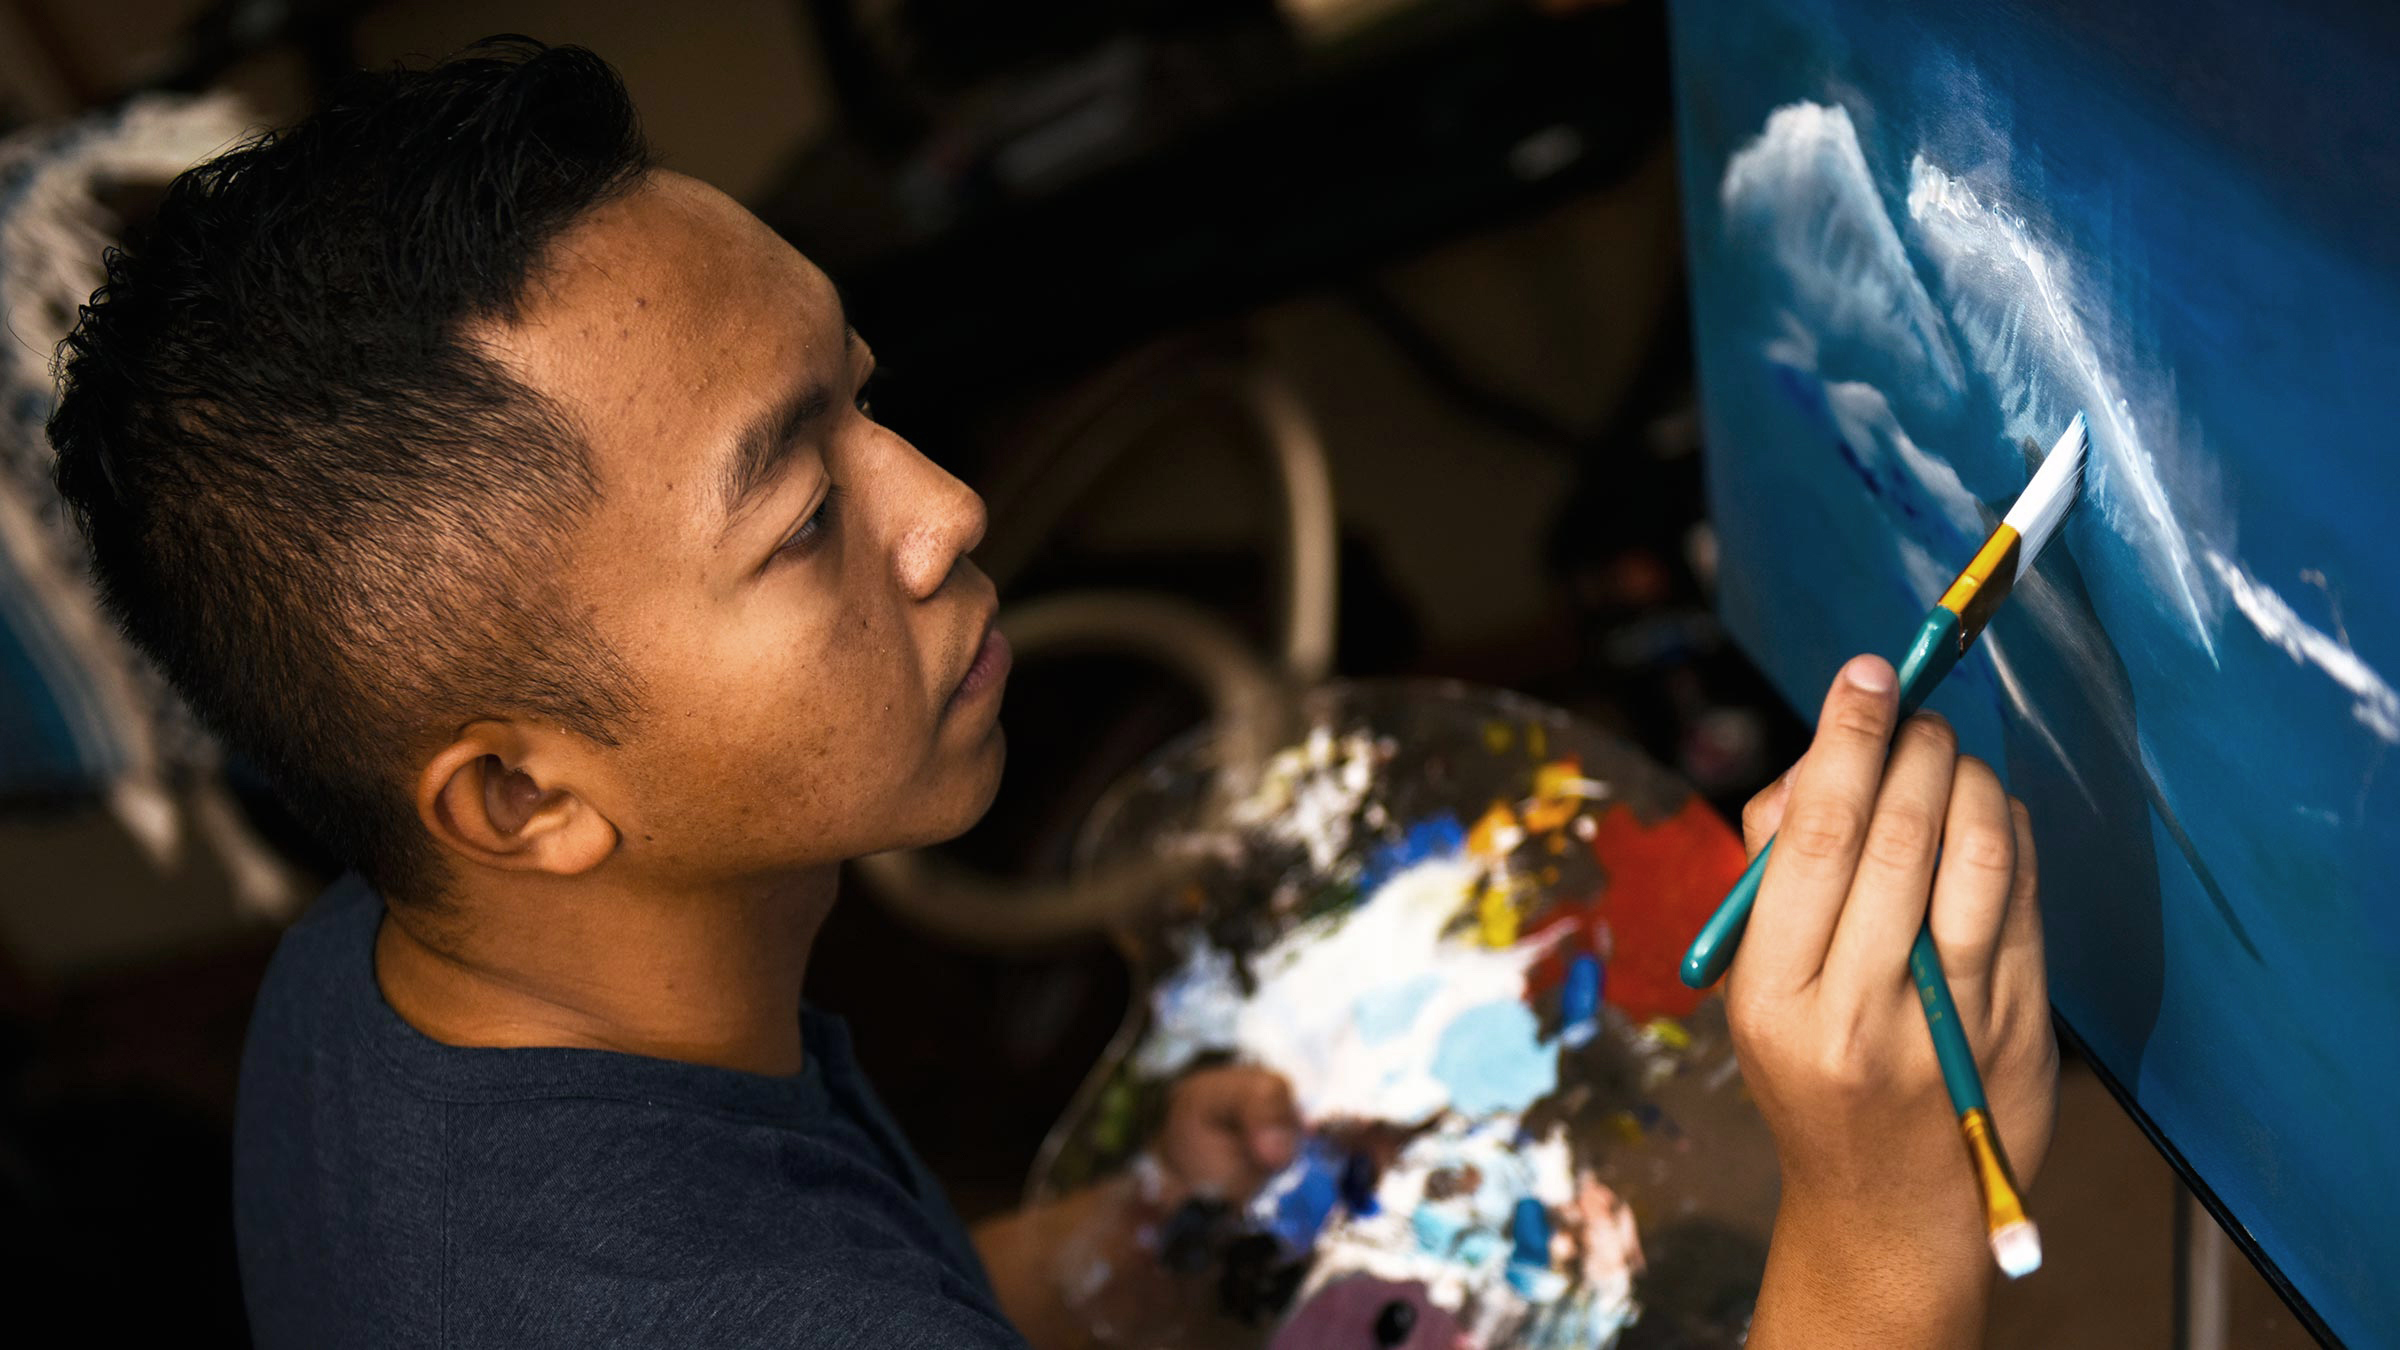 service member is painting